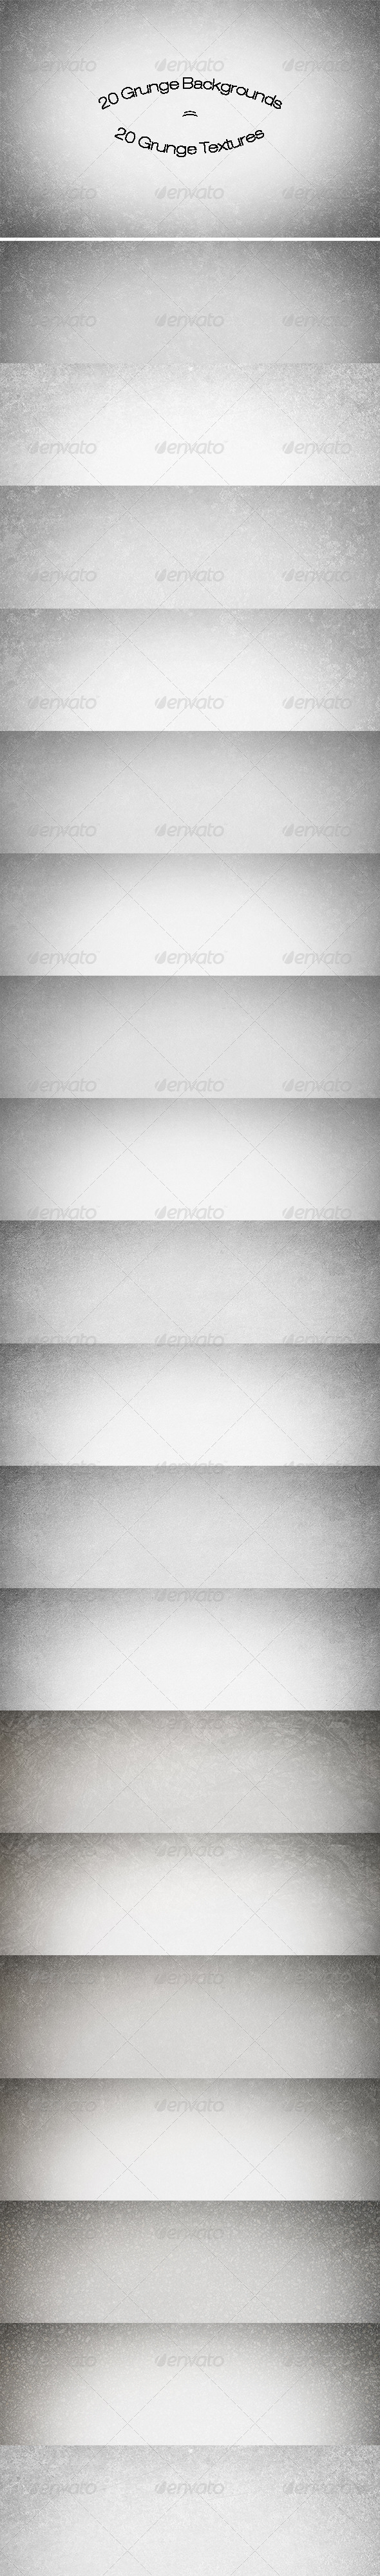 GraphicRiver 20 Grunge Backgrounds Textures 6965934